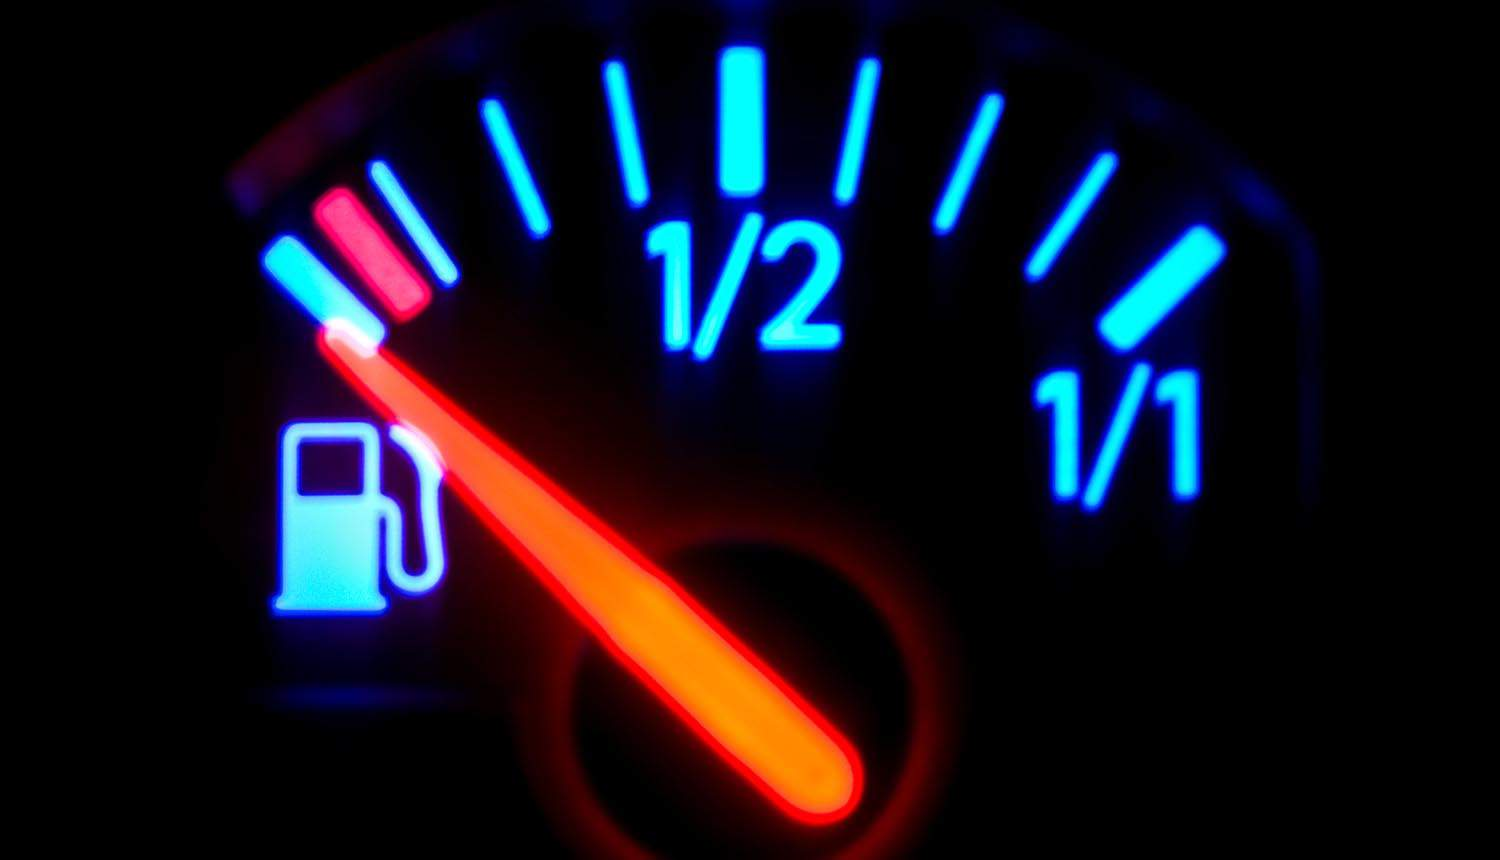 Fuel gauge on vehicle dashboard showing TSA security directive for pipeline operators